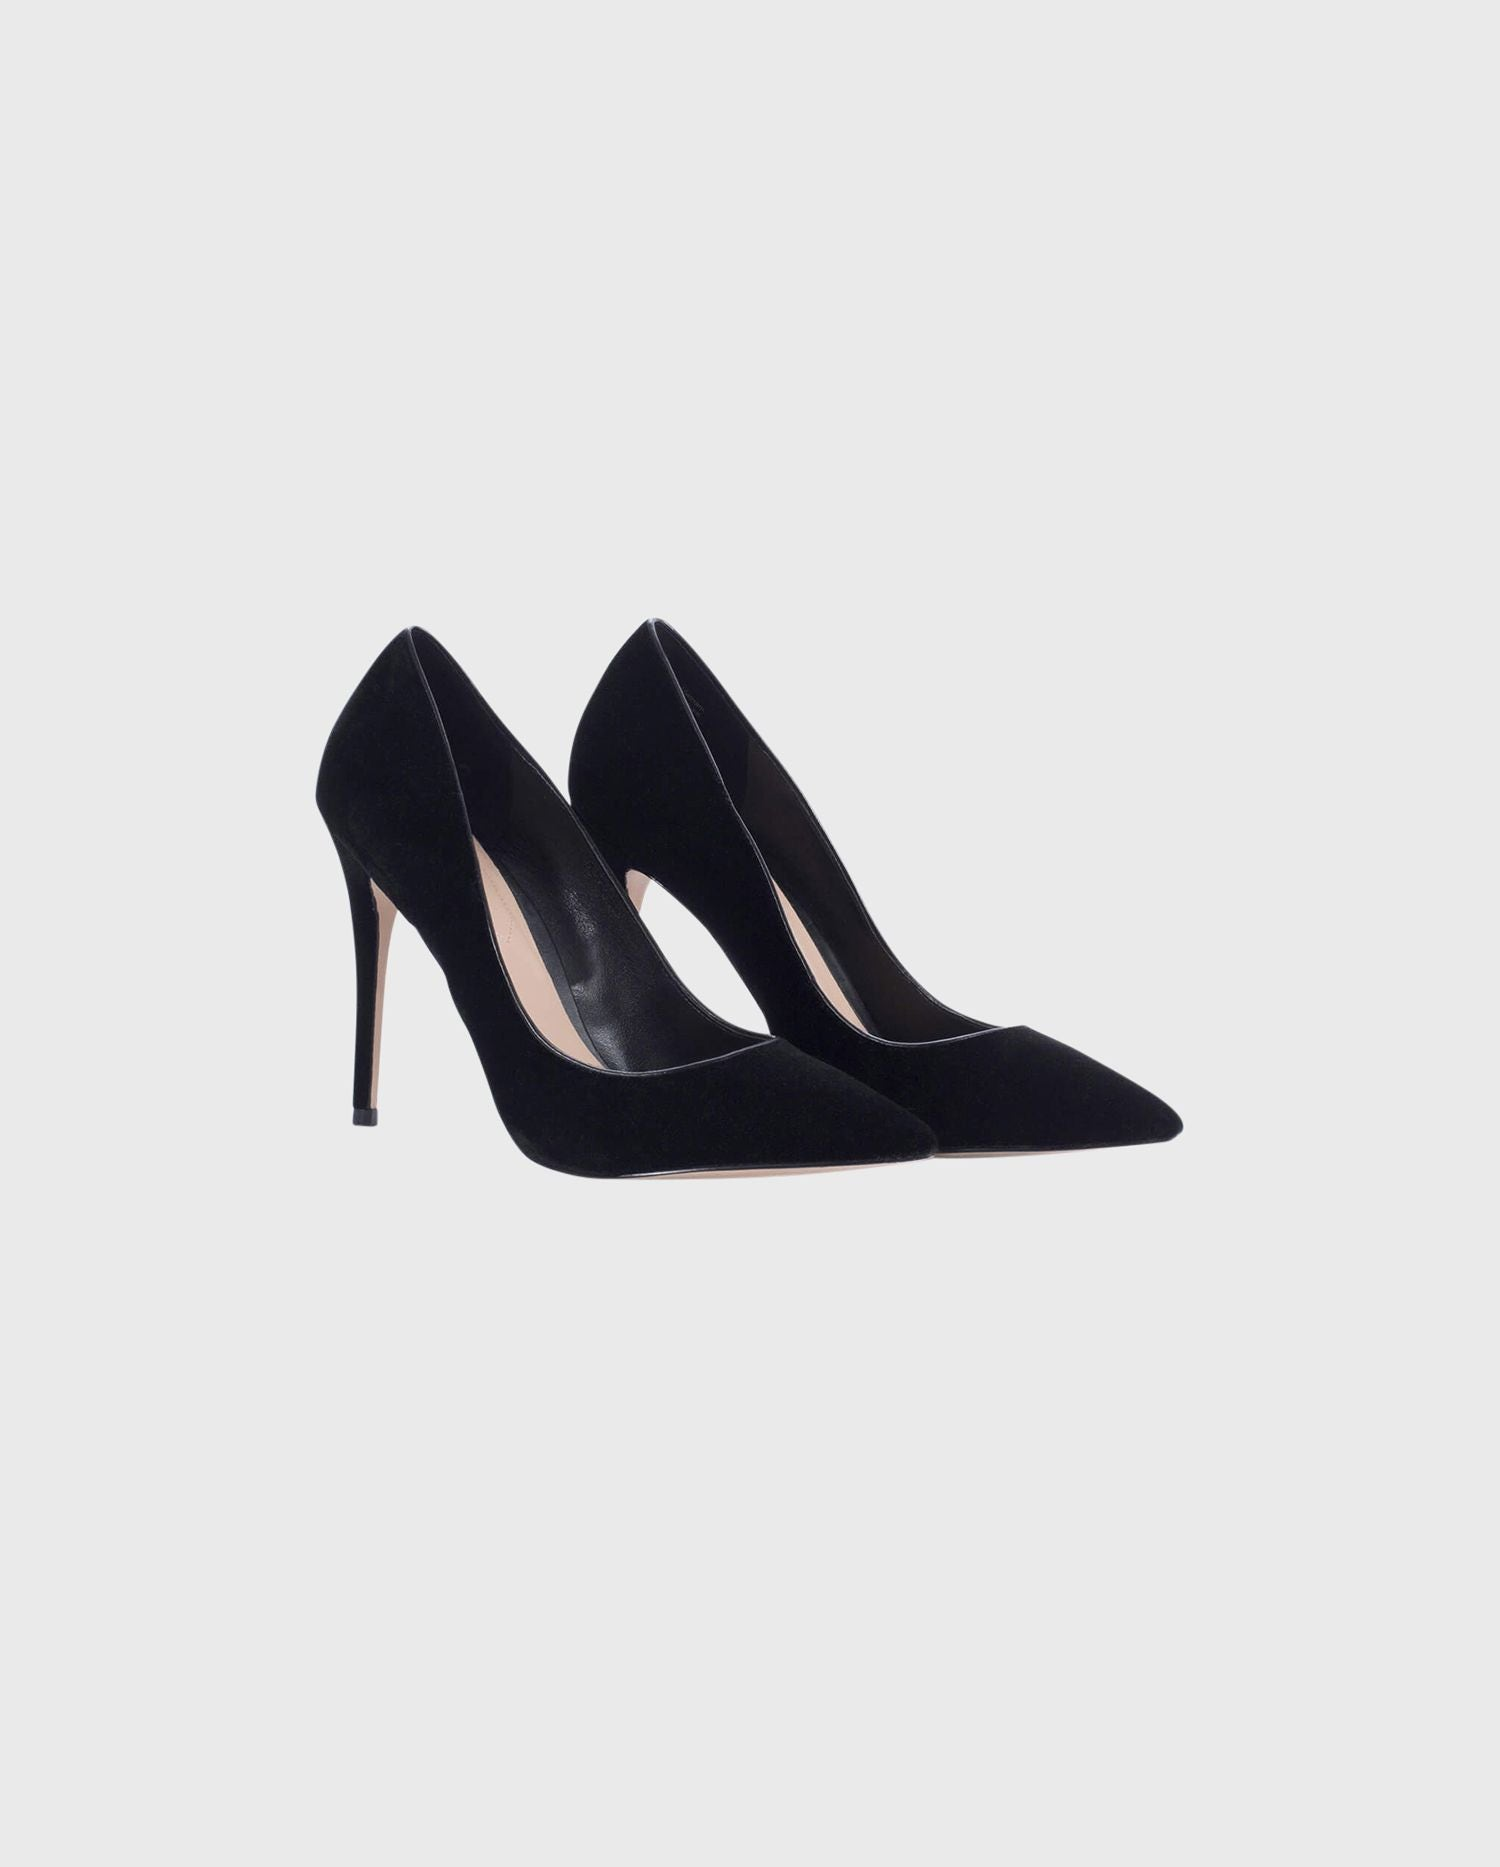 The ORLANDO black suede pumps are the perfect staple heel to add to your wardrobe.